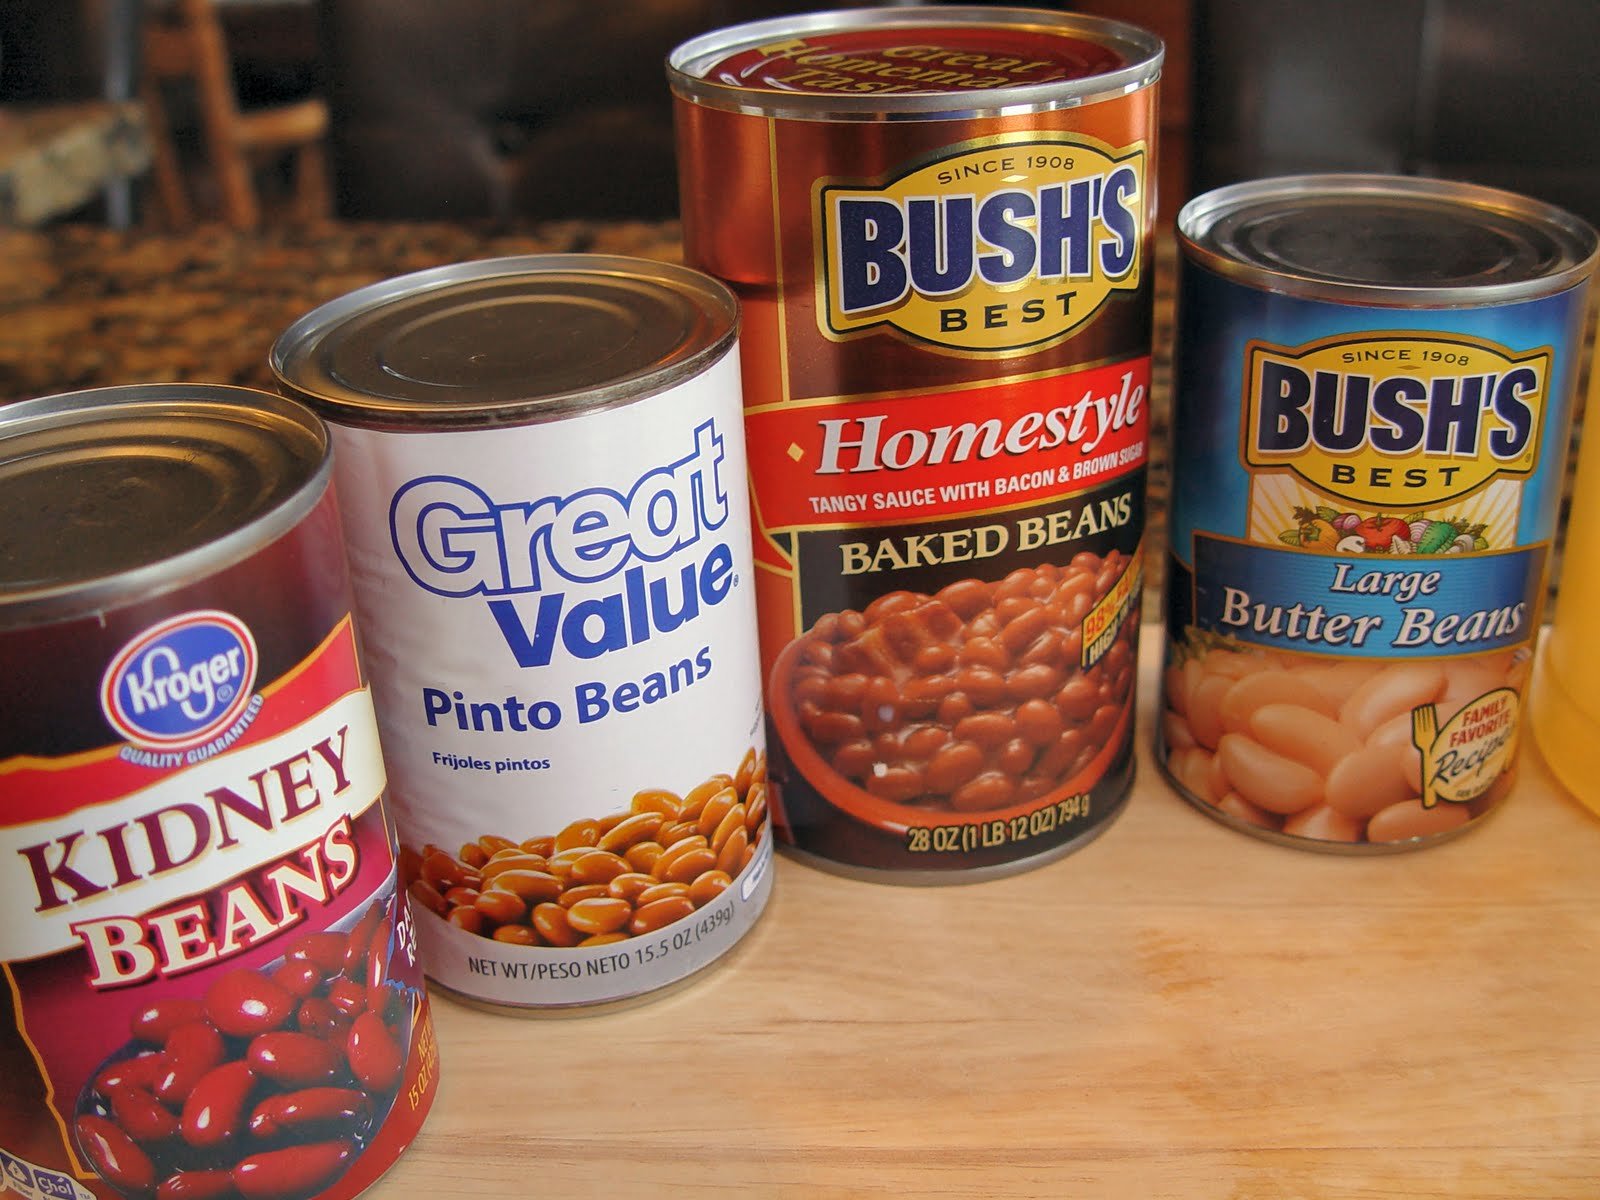 Lumberjack Baked Beans Jamie Cooks It Up Family Favorite Food And Recipes